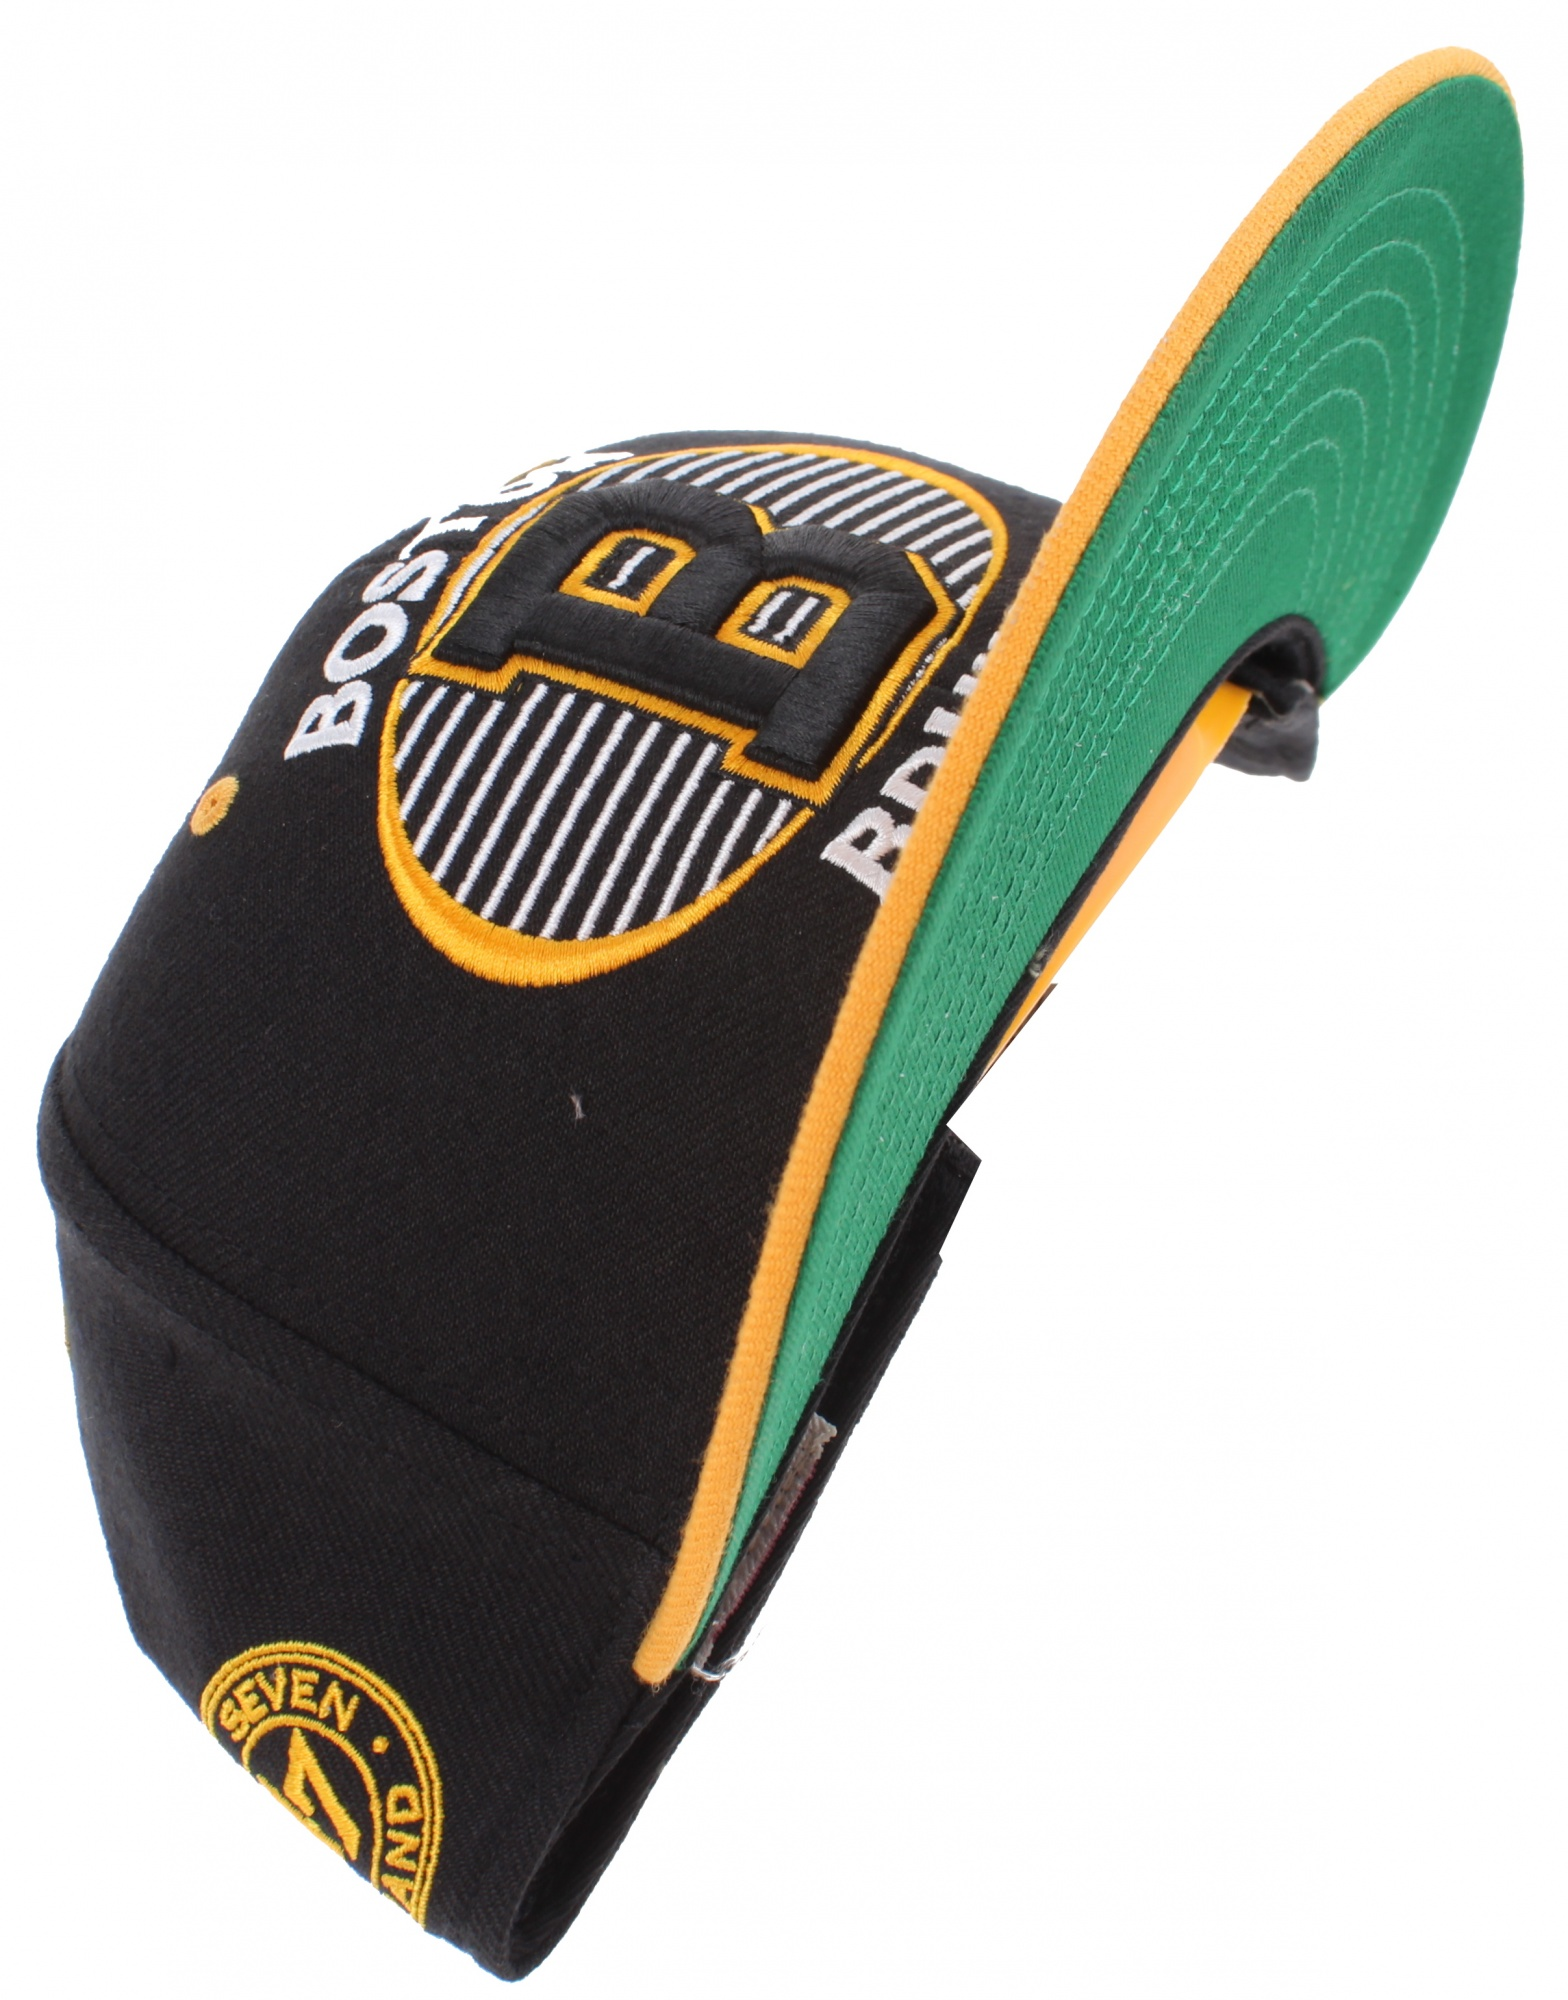 3ee852fcbff9d 47 Brand Boston Bruins cap black   yellow one size - Internet ...